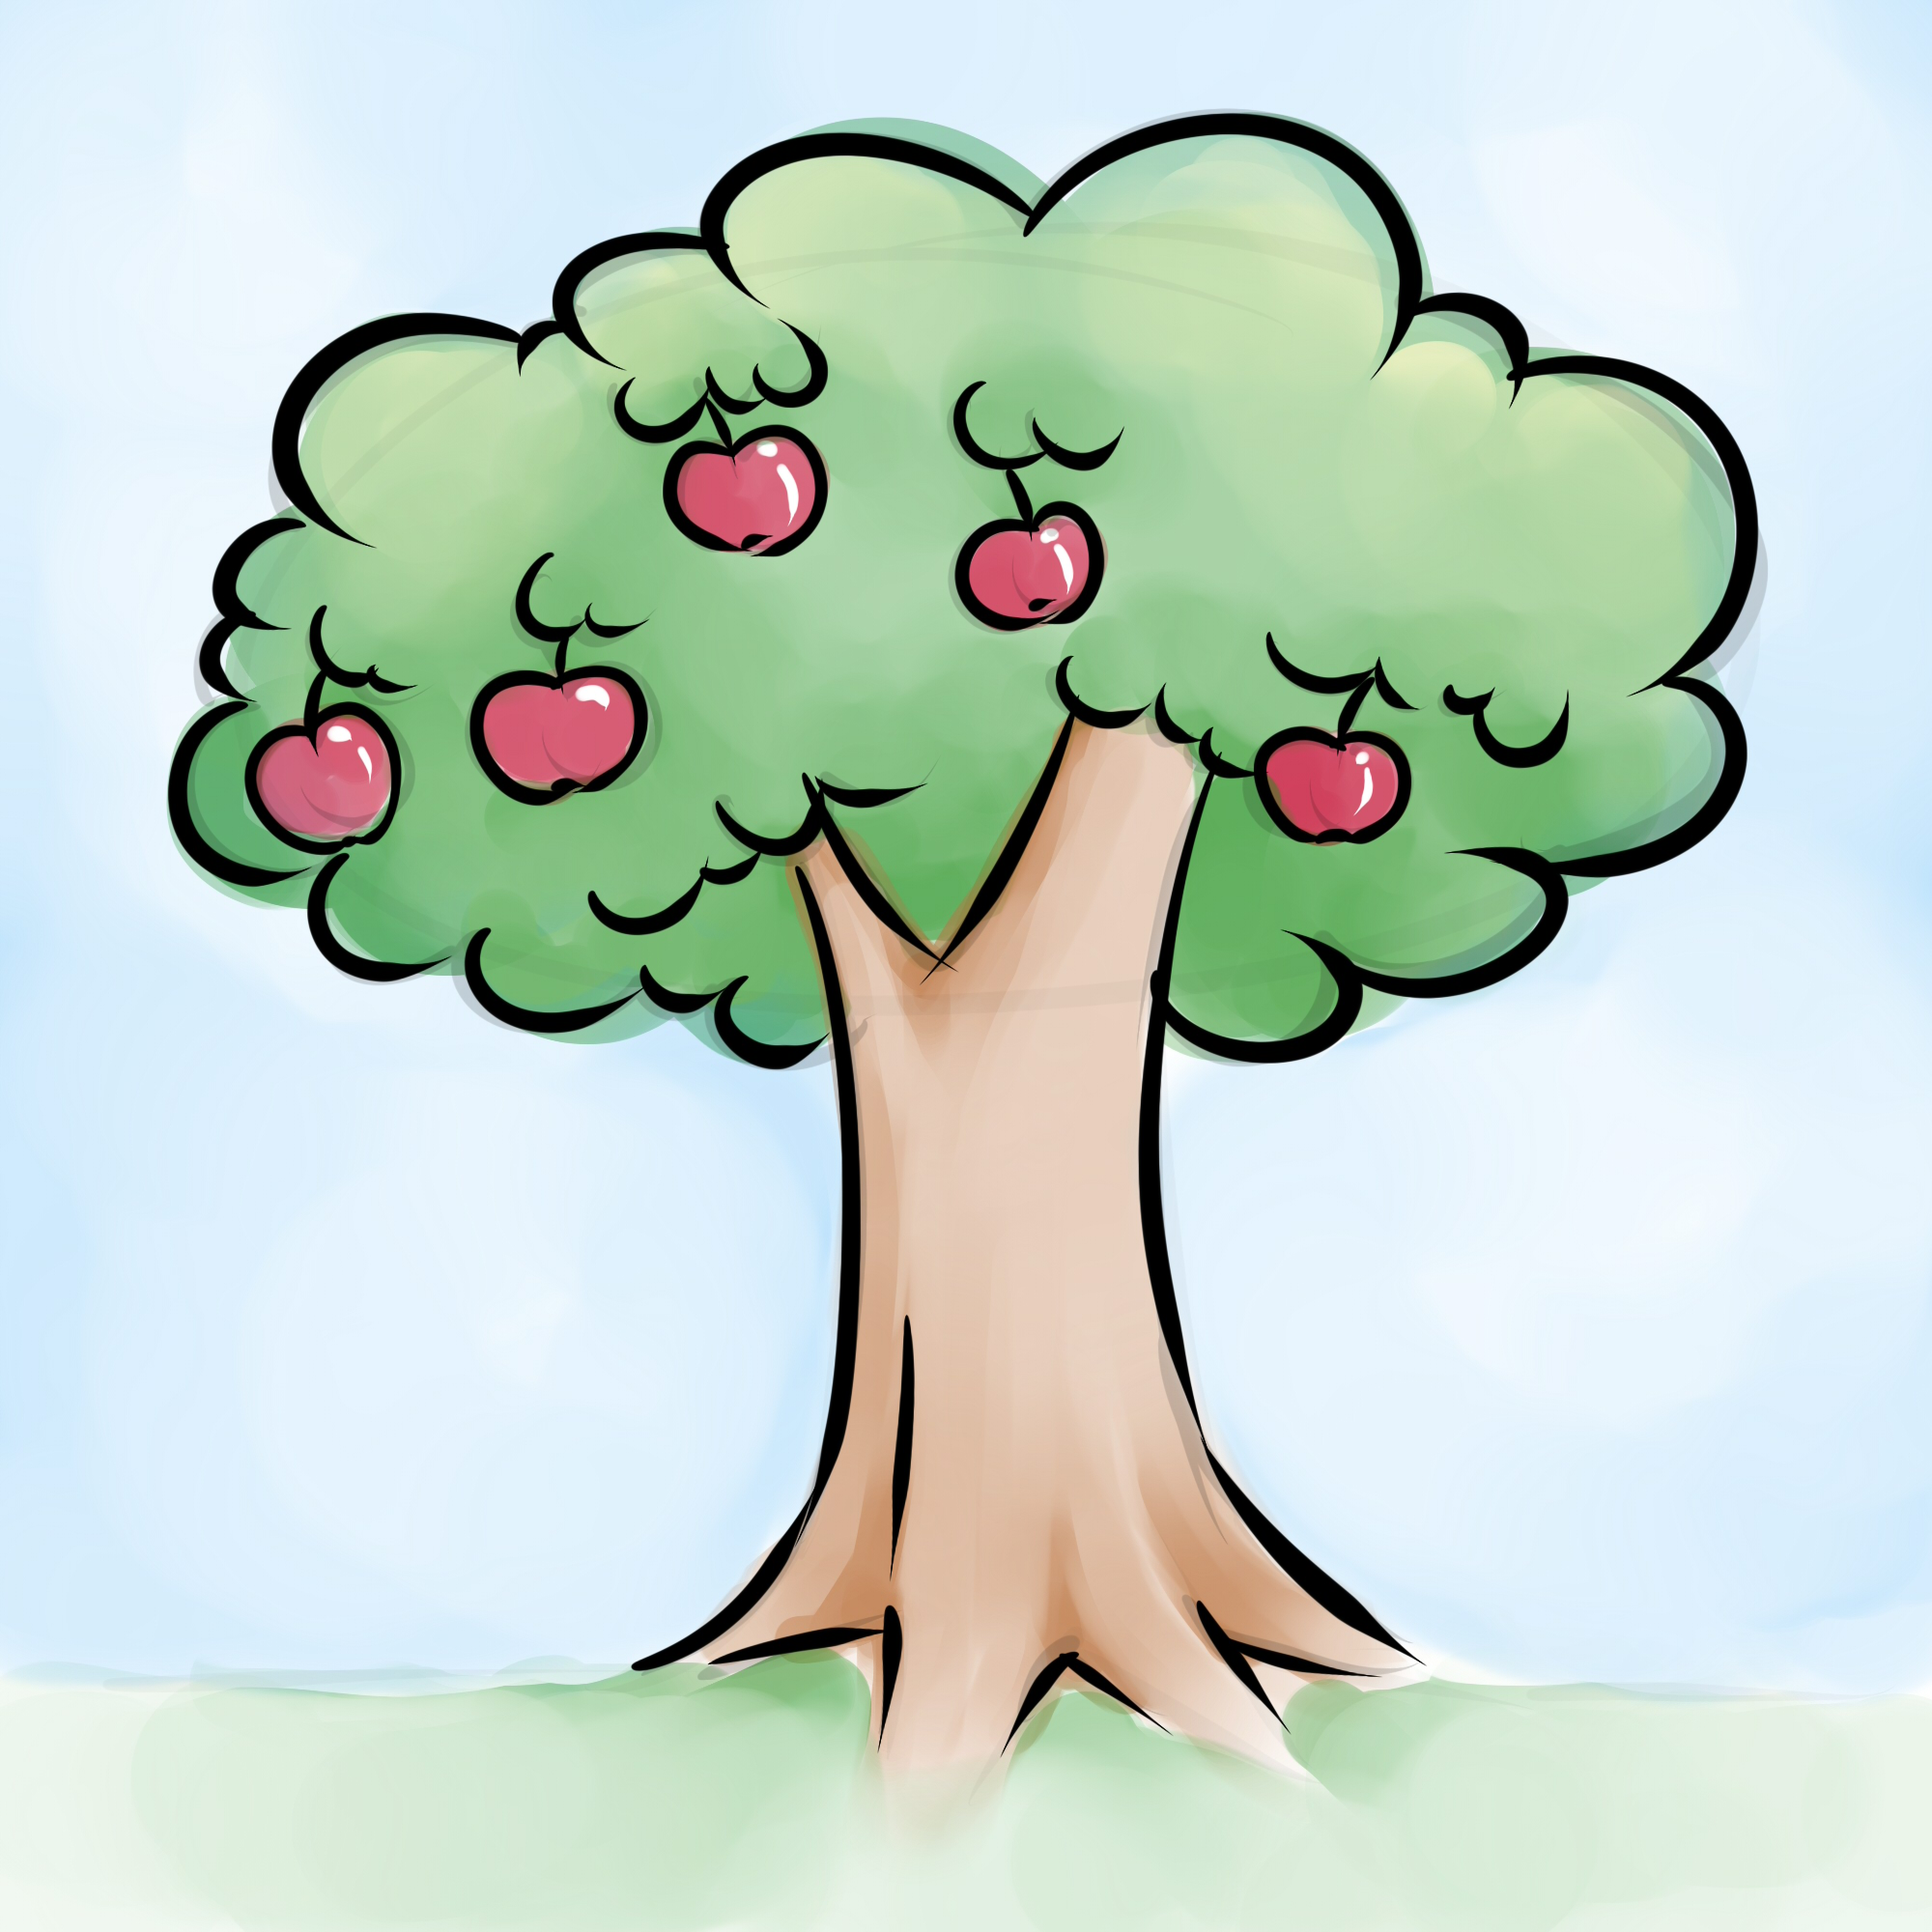 Apple Tree Drawing - ClipArt Best